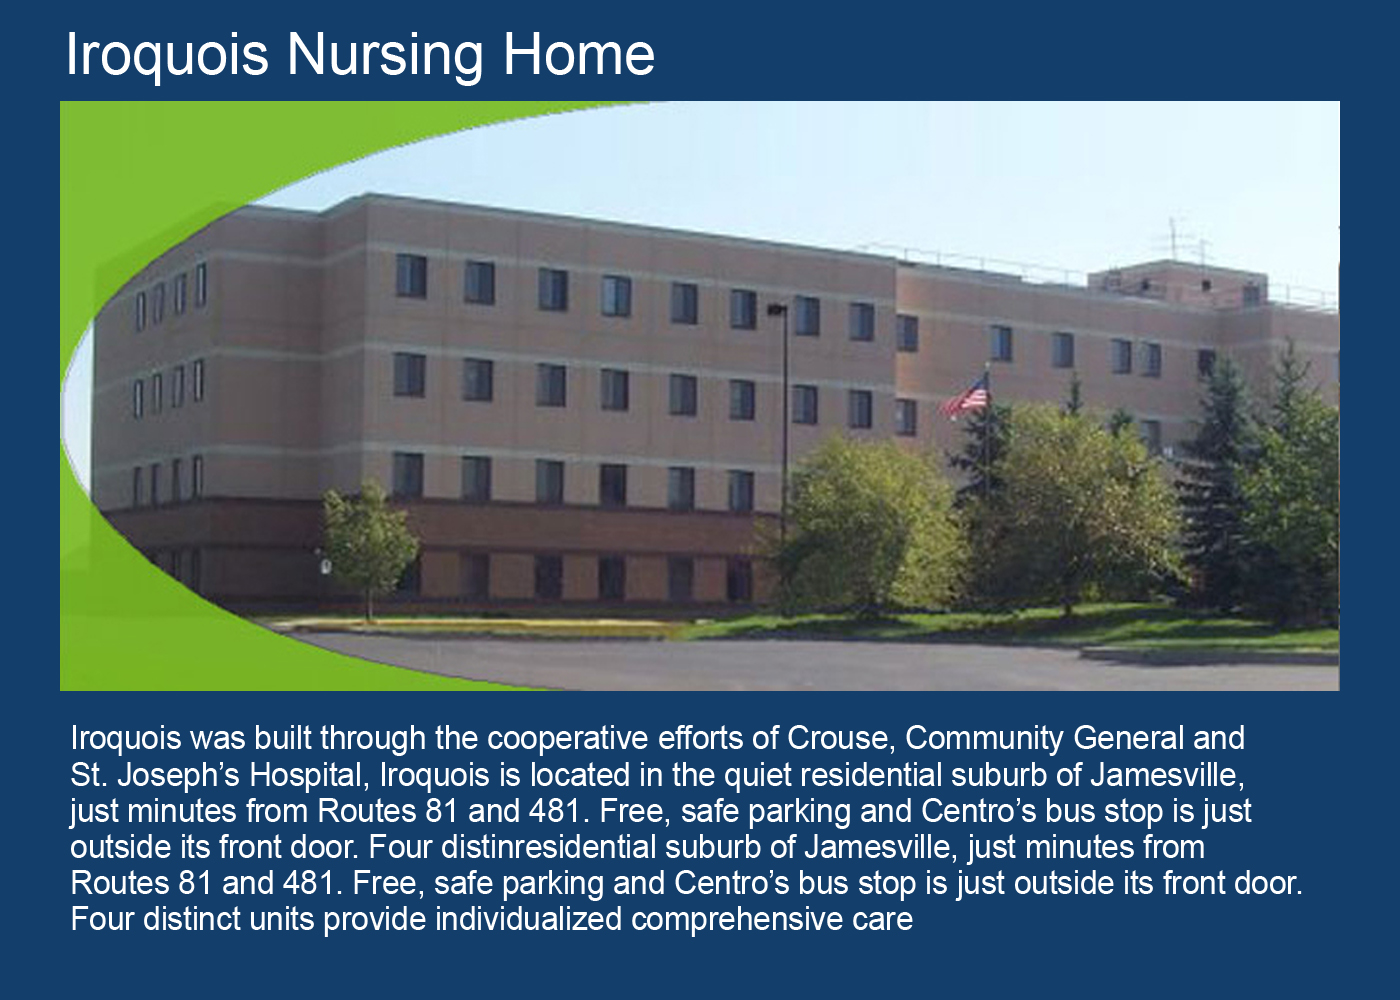 Iroquois Nursing Home